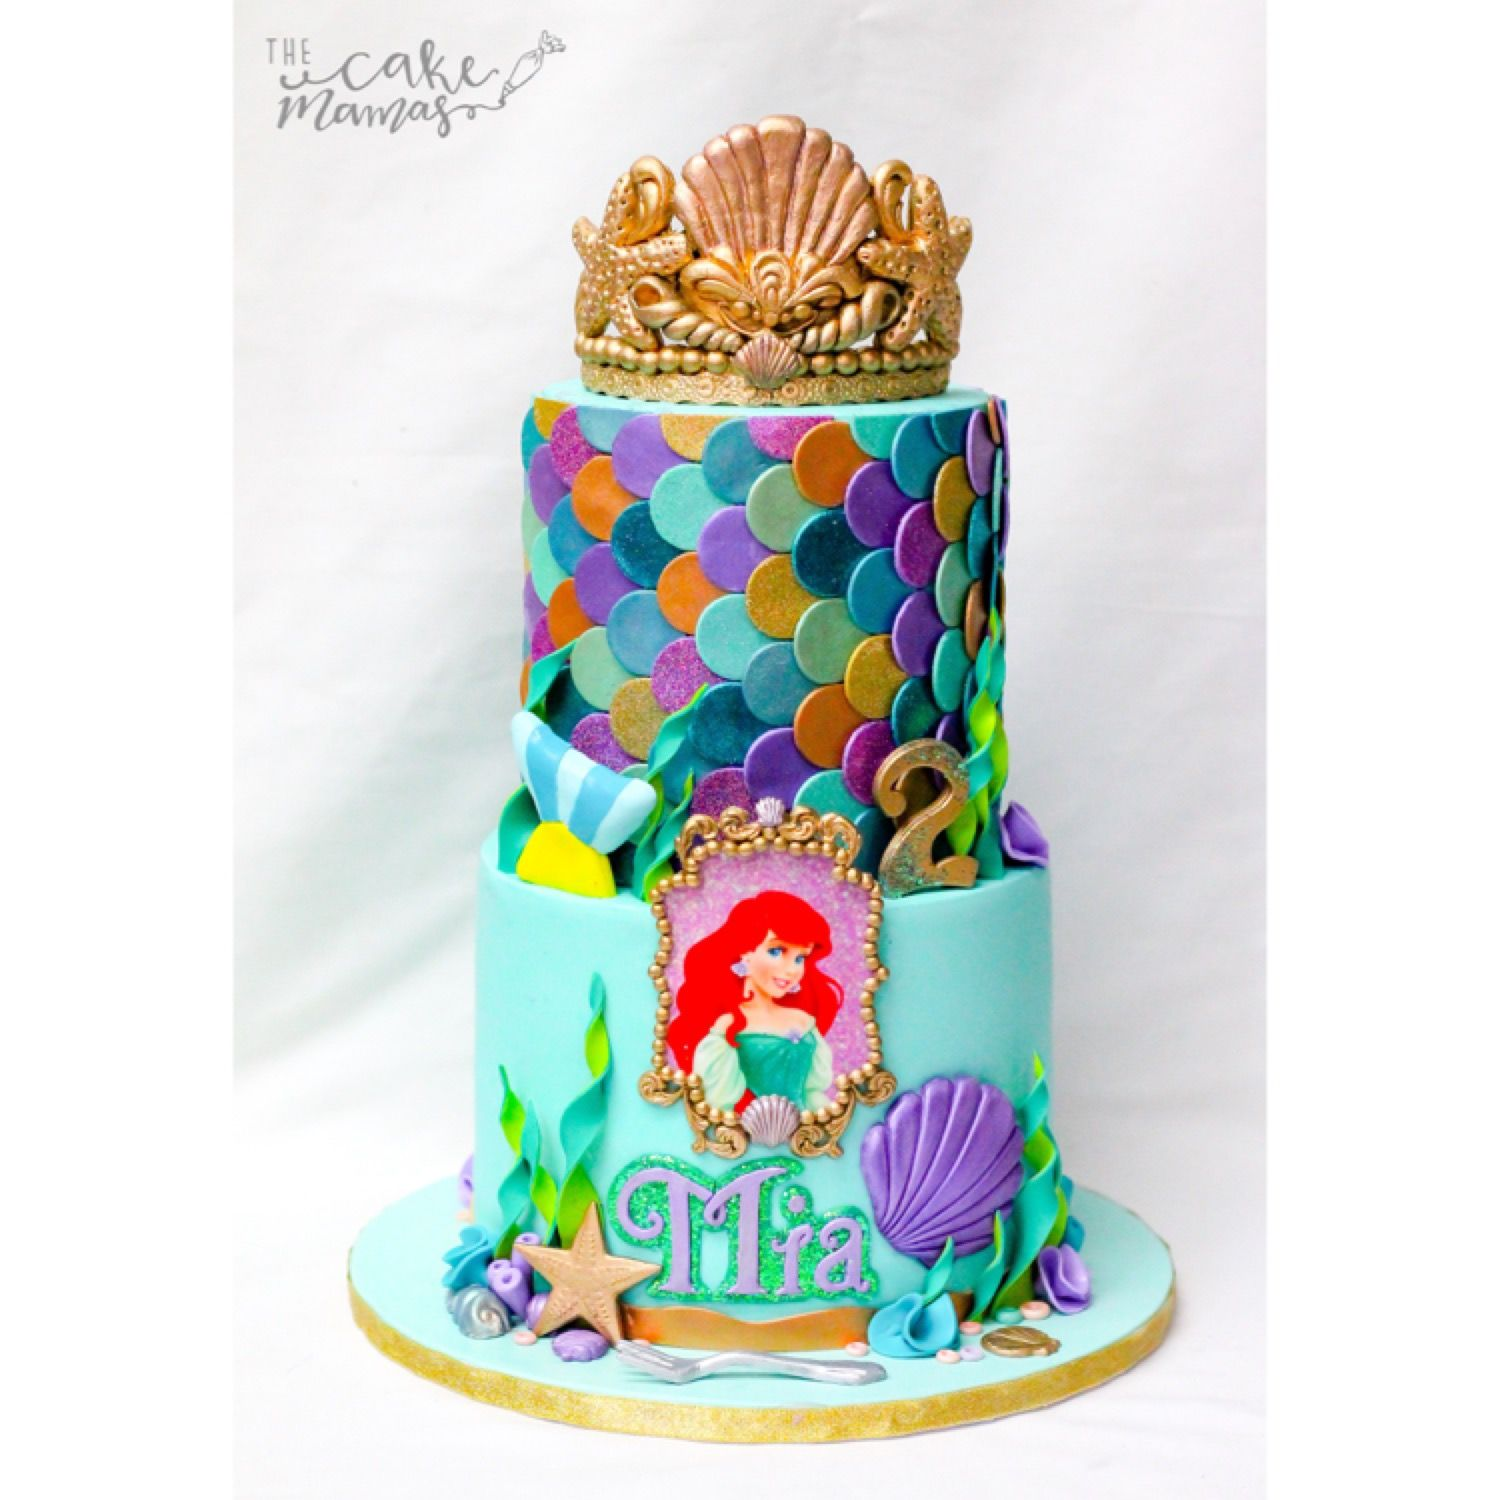 Little Mermaid inspired birthday cake for a special birthday girl